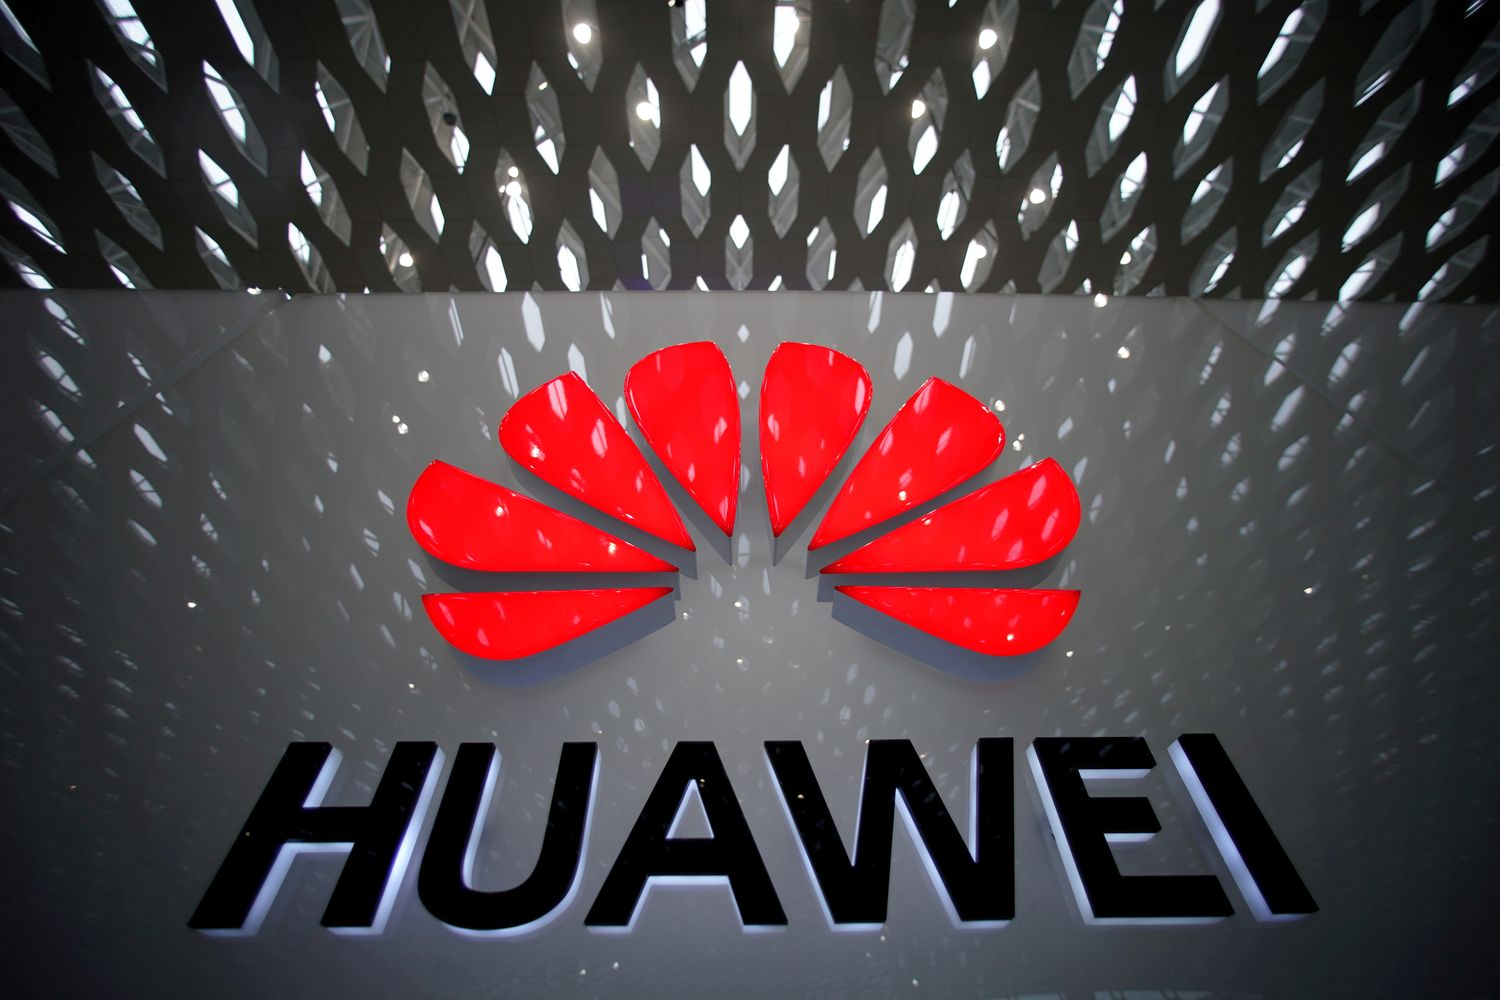 Trump says he does not want to do business with Huawei